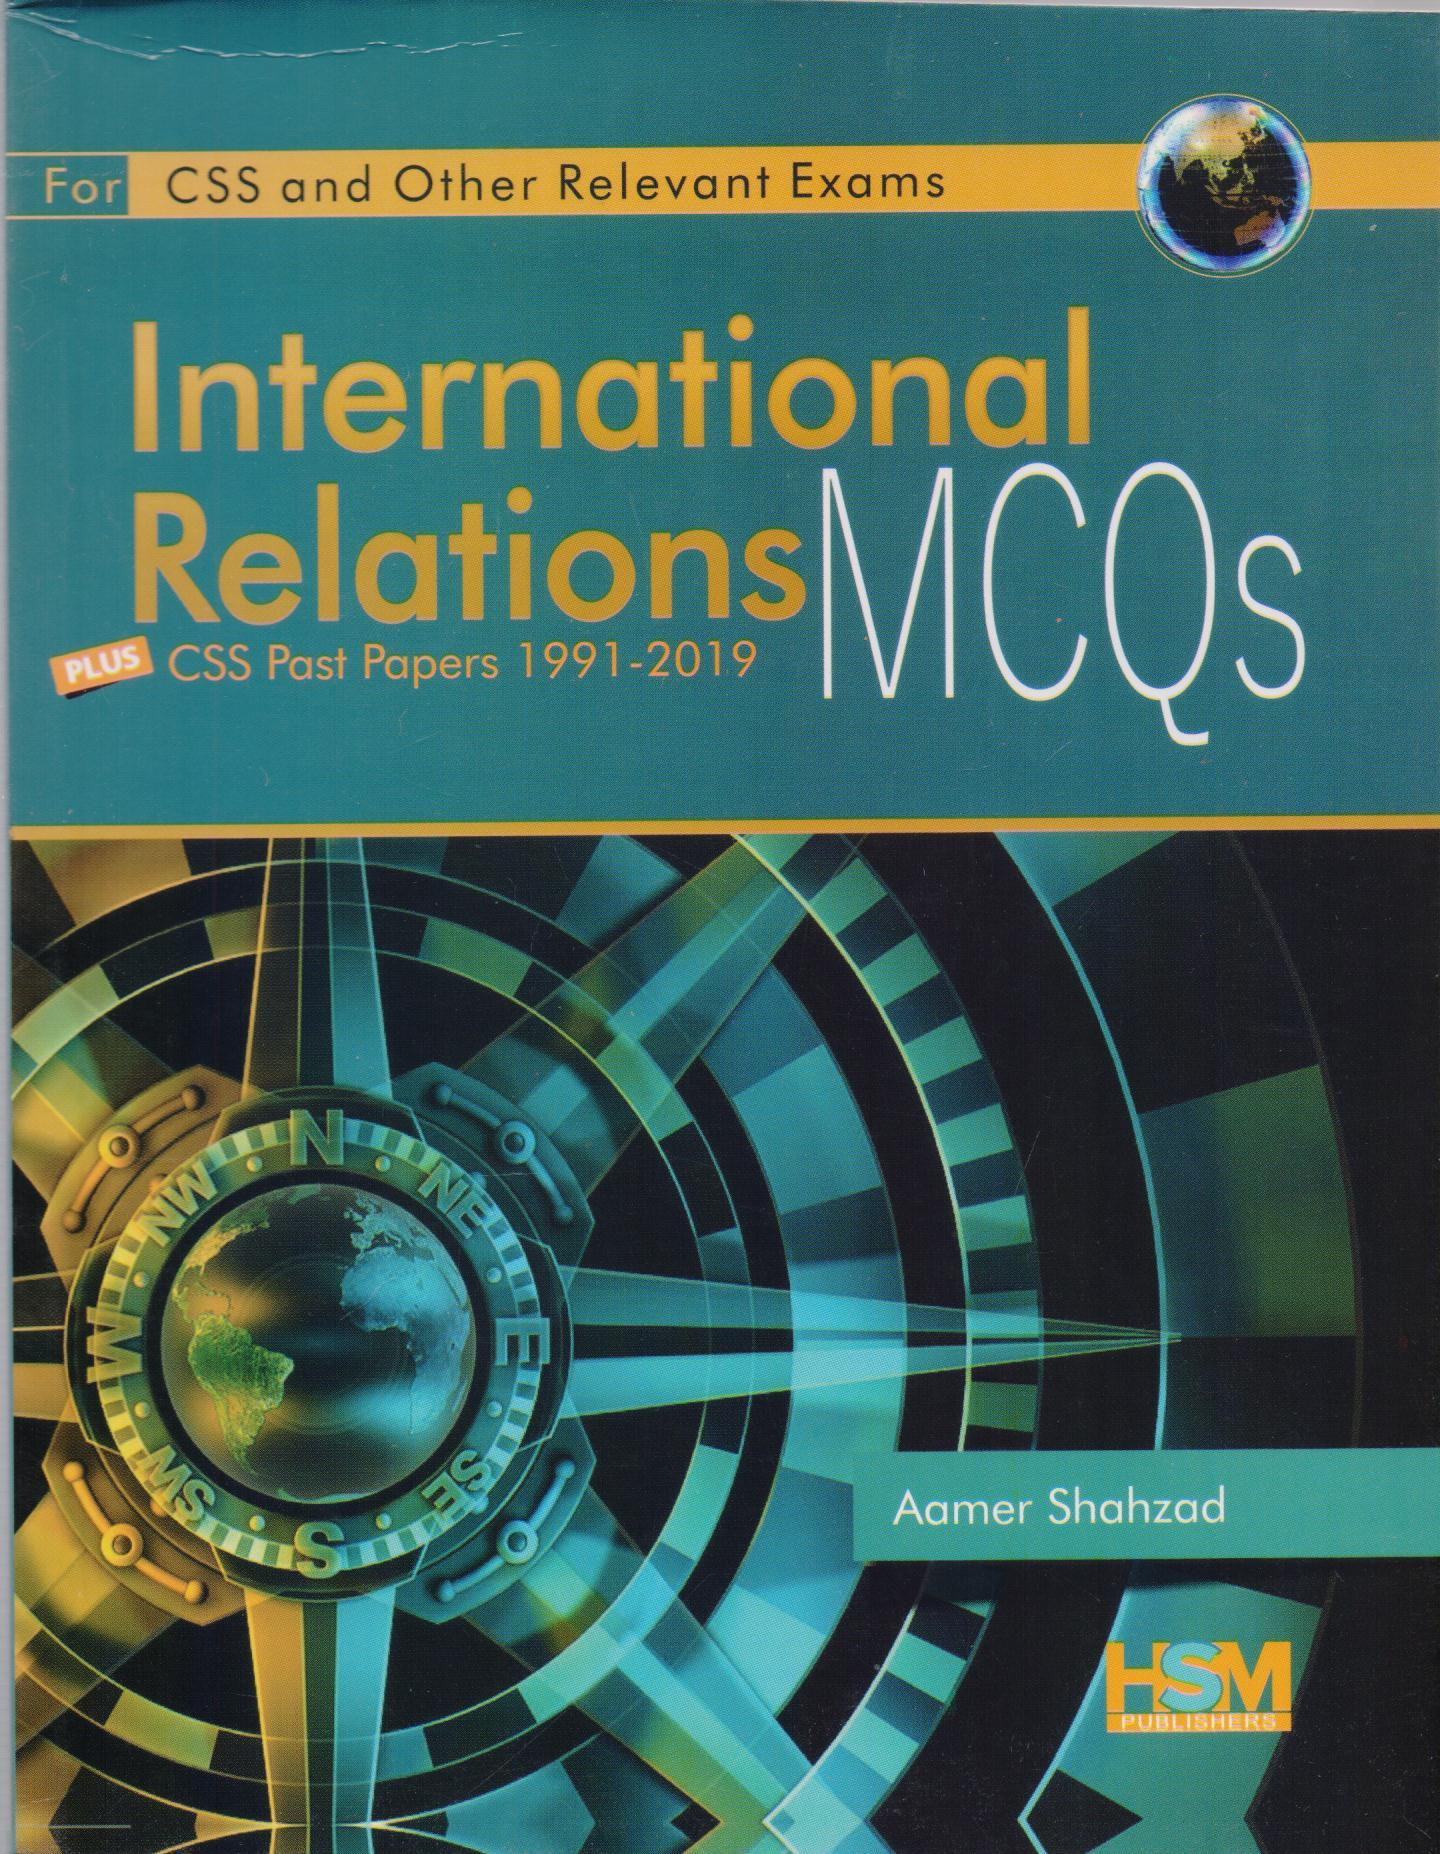 HSM International Relations MCQs Plus CSS Past Papers 1991-2019 by Aamer  Shahzad